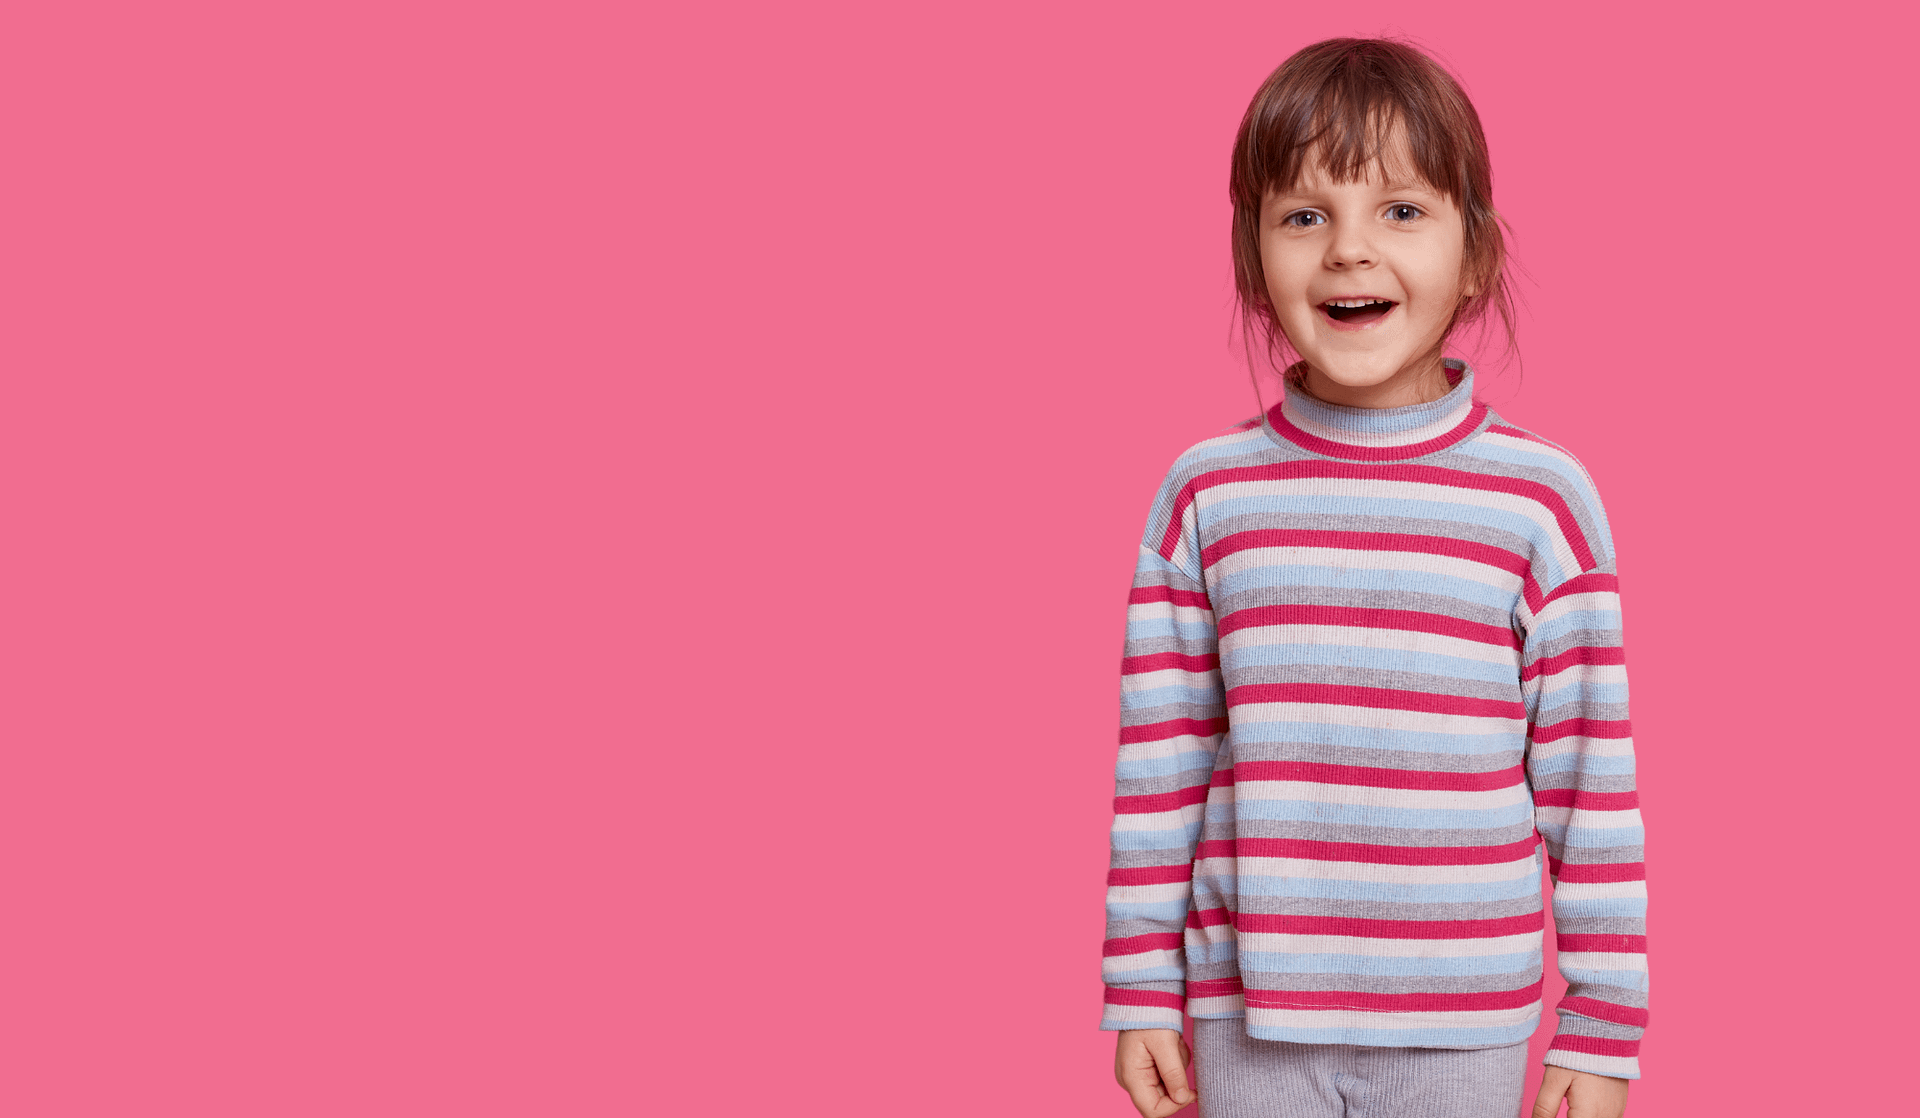 young female child smiling happily